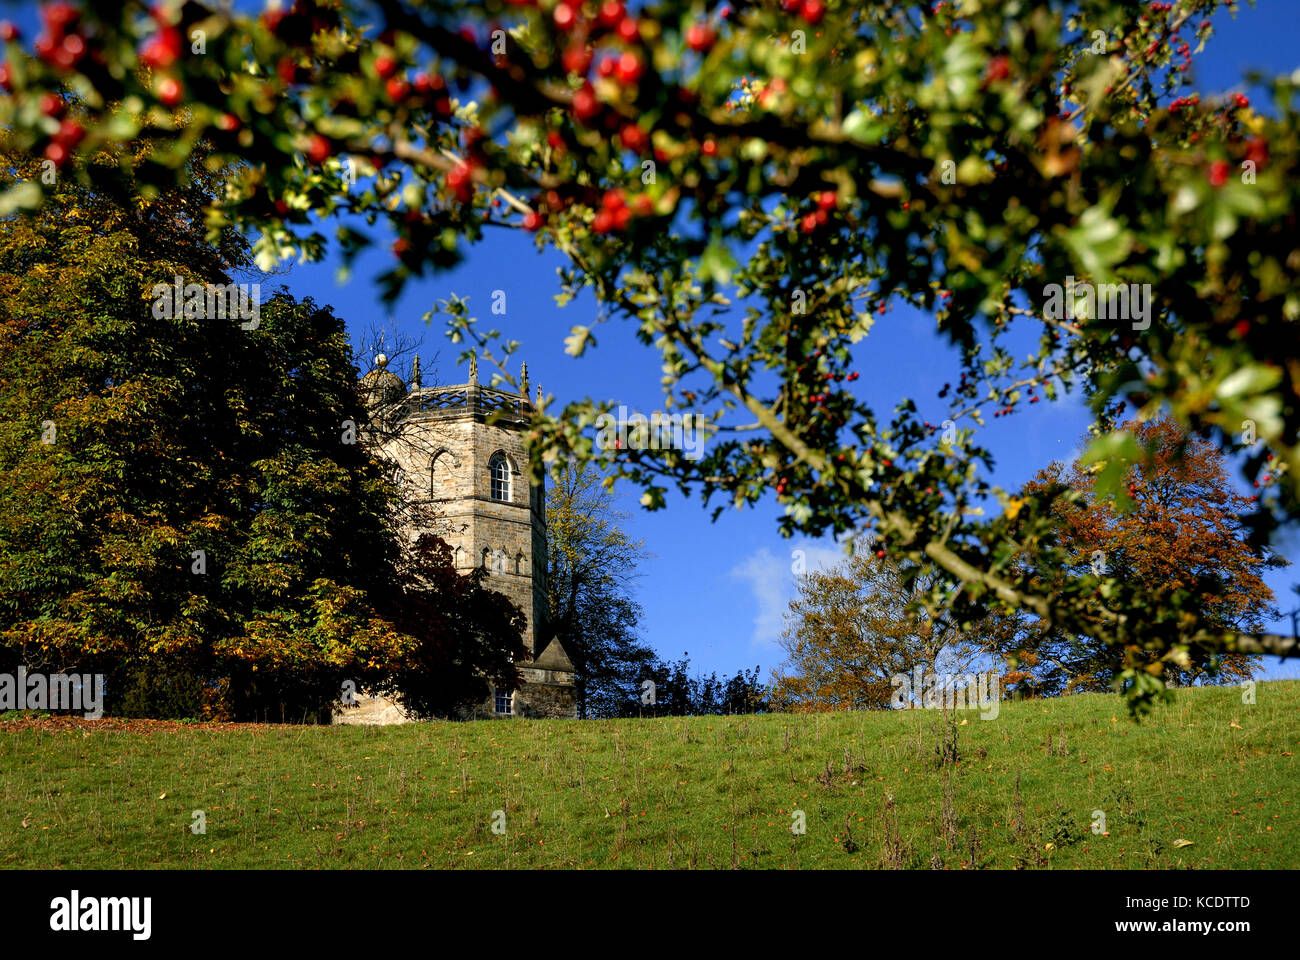 Old Garden Richmond United Kingdom Stockfotos Old Garden Richmond United Kingdom Bilder Alamy